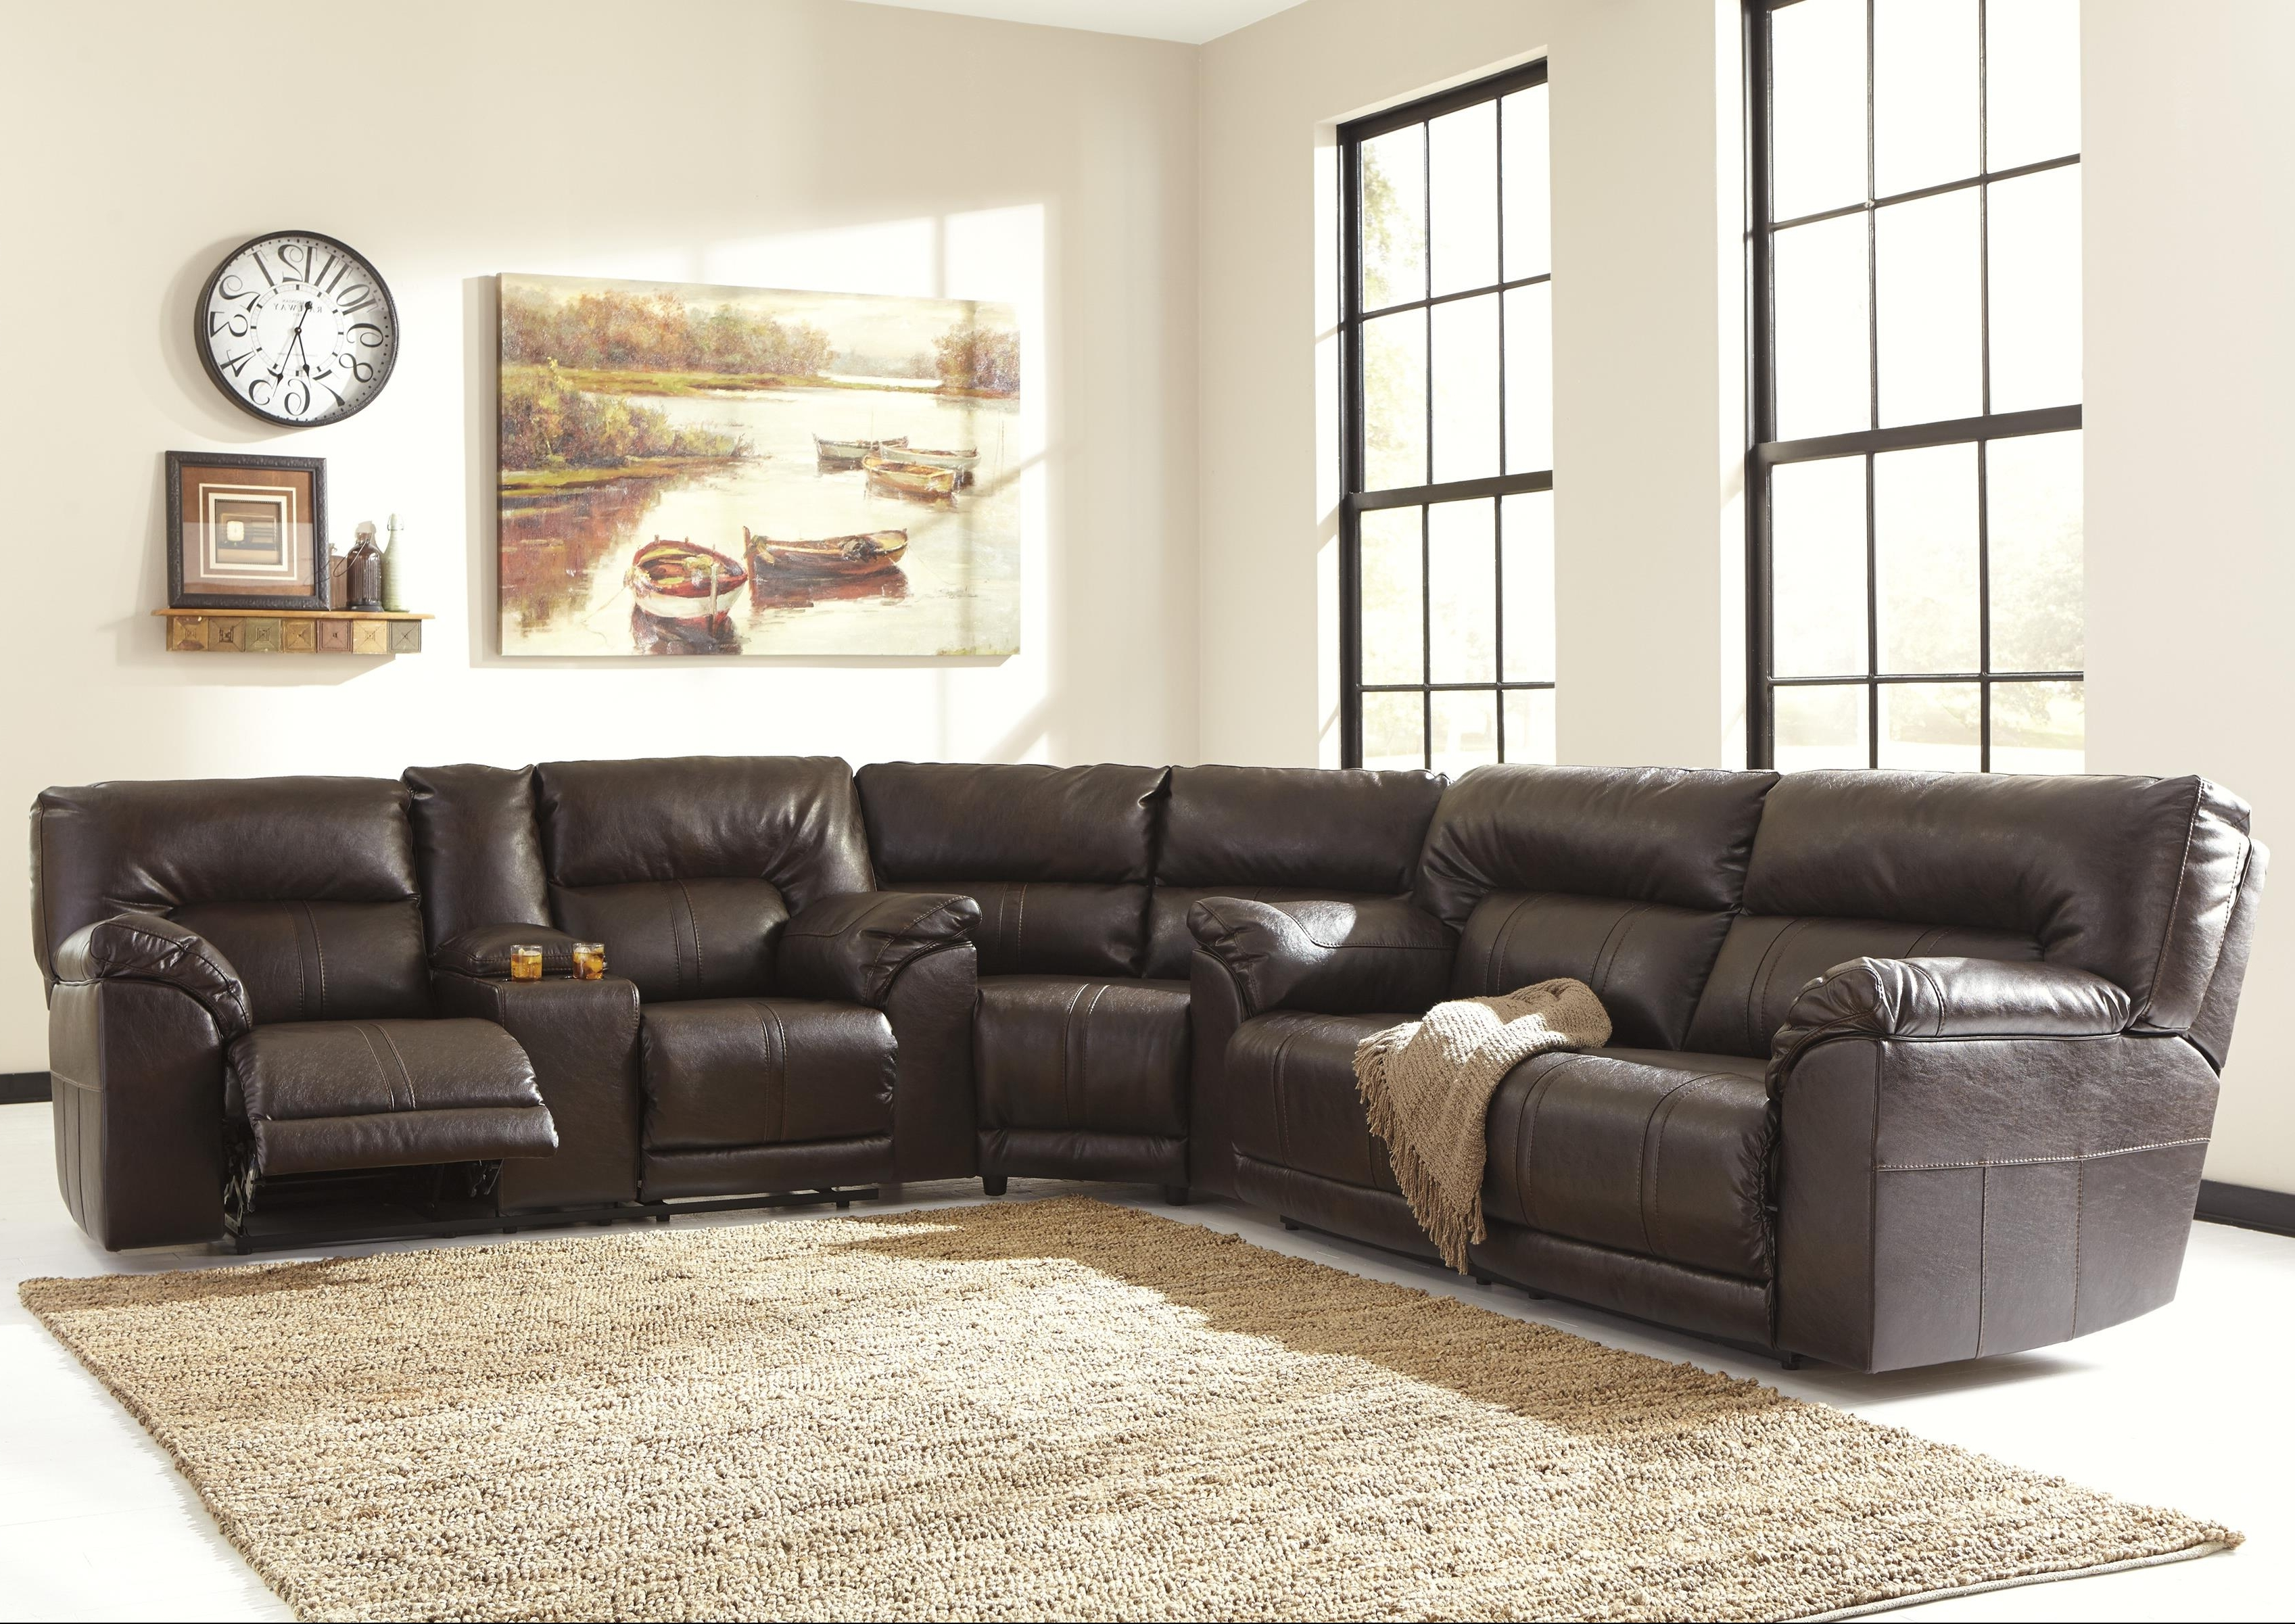 Benchcraftashley Barrettsville Durablend® 3 Piece Reclining In Most Up To Date Sectional Sofas At Birmingham Al (View 1 of 20)